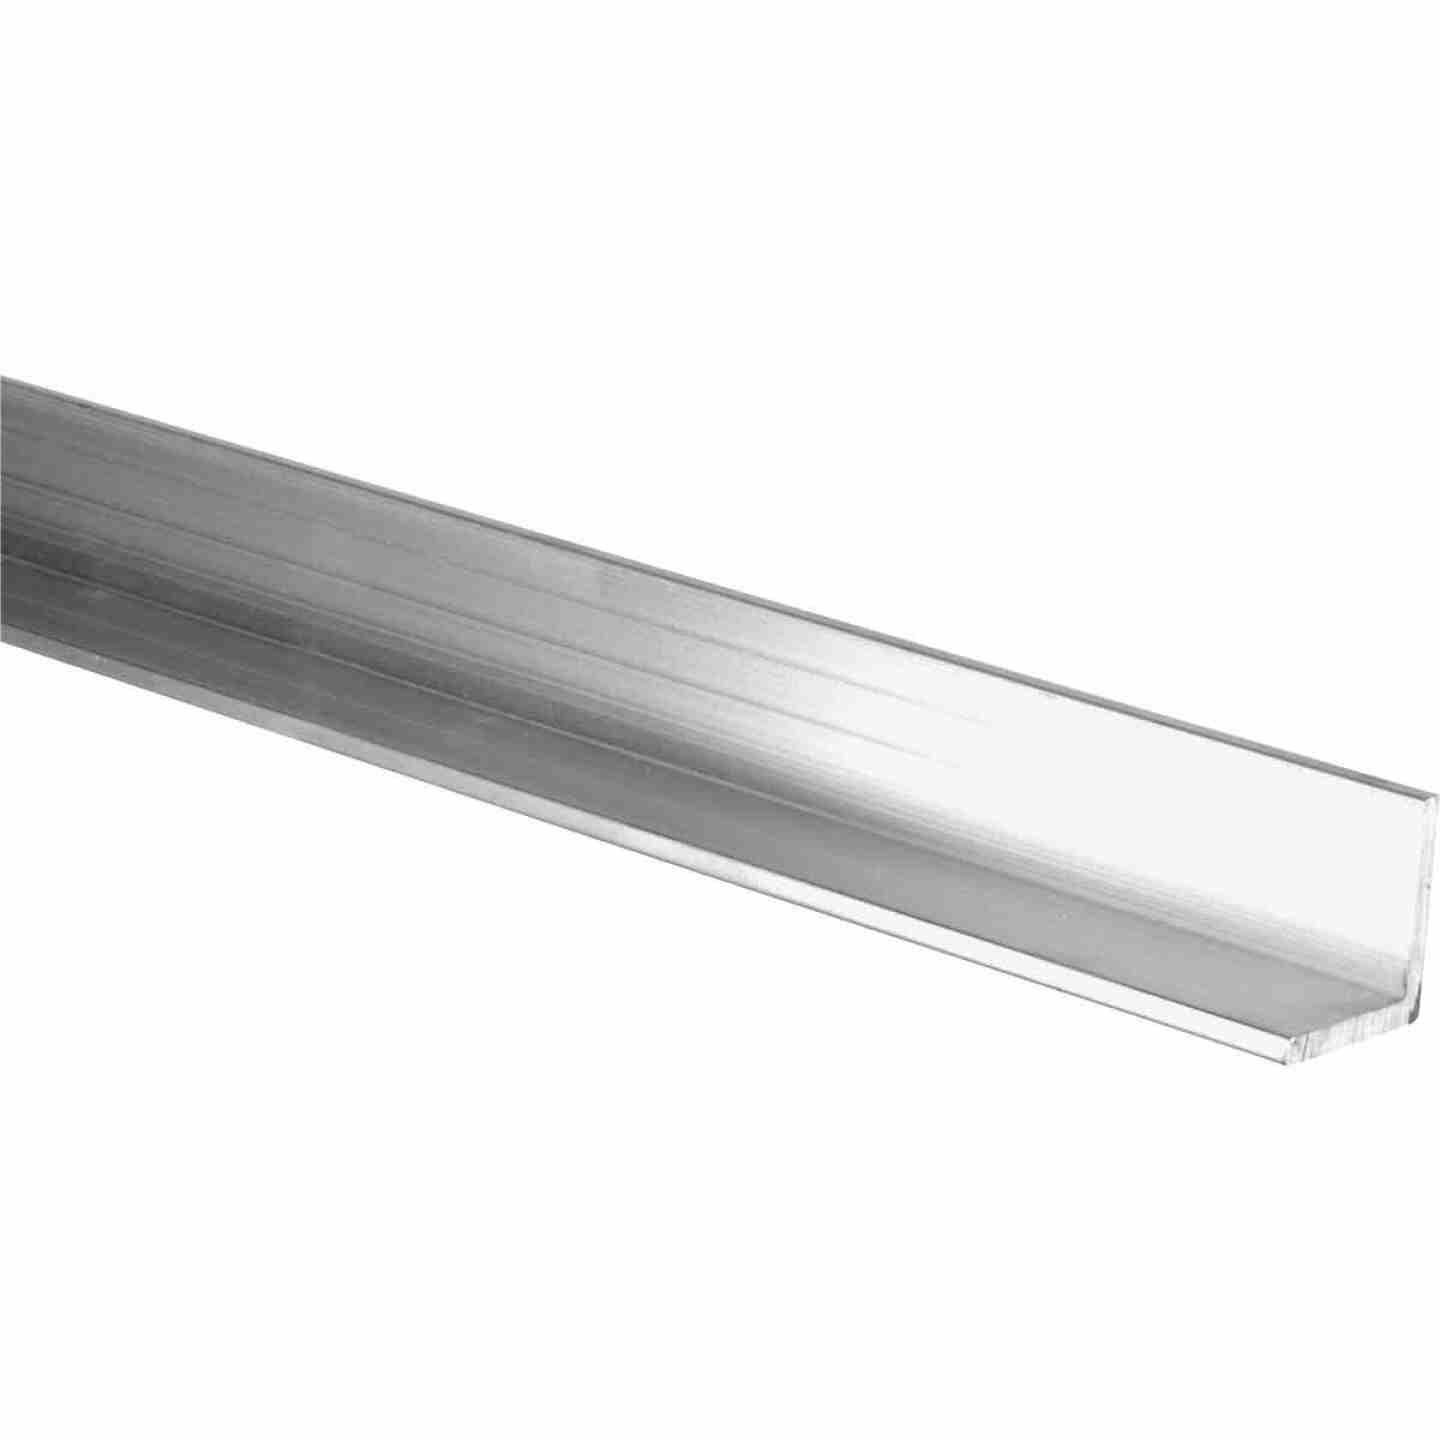 HILLMAN Steelworks Mill 1-1/2 In. x 8 Ft., 1/8 In. Aluminum Solid Angle Image 1